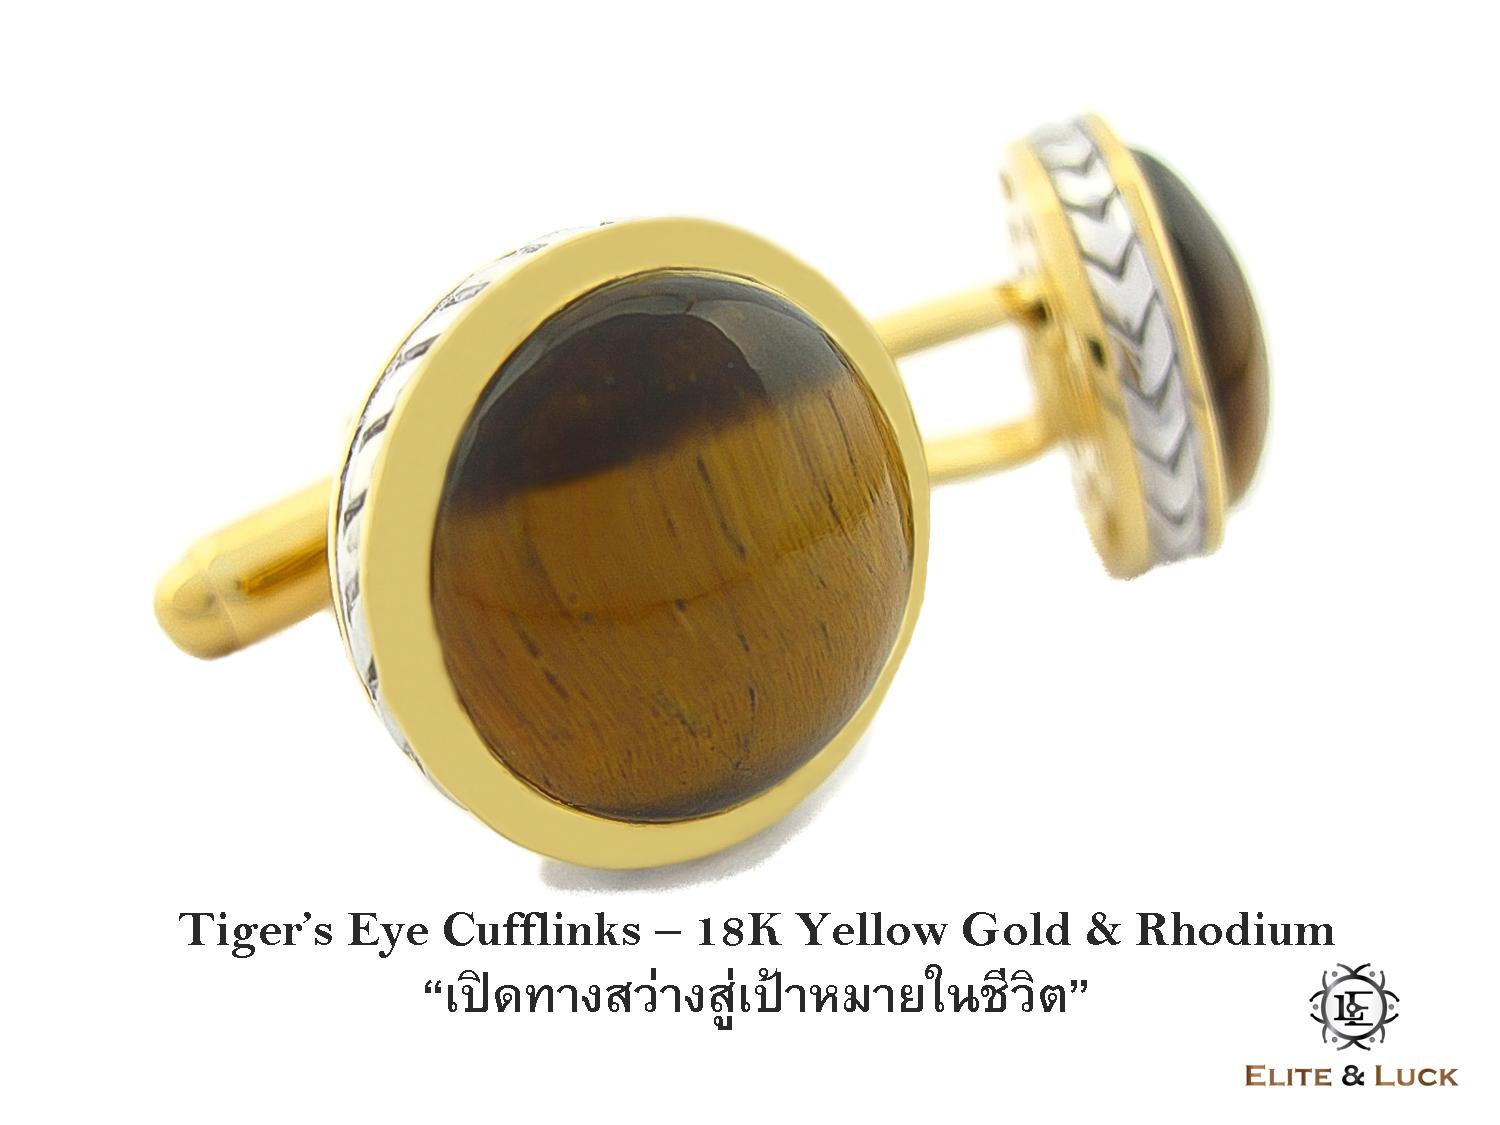 Tiger's Eye Sterling Silver Cufflinks สี 18K Yellow Gold & Rhodium รุ่น Limited